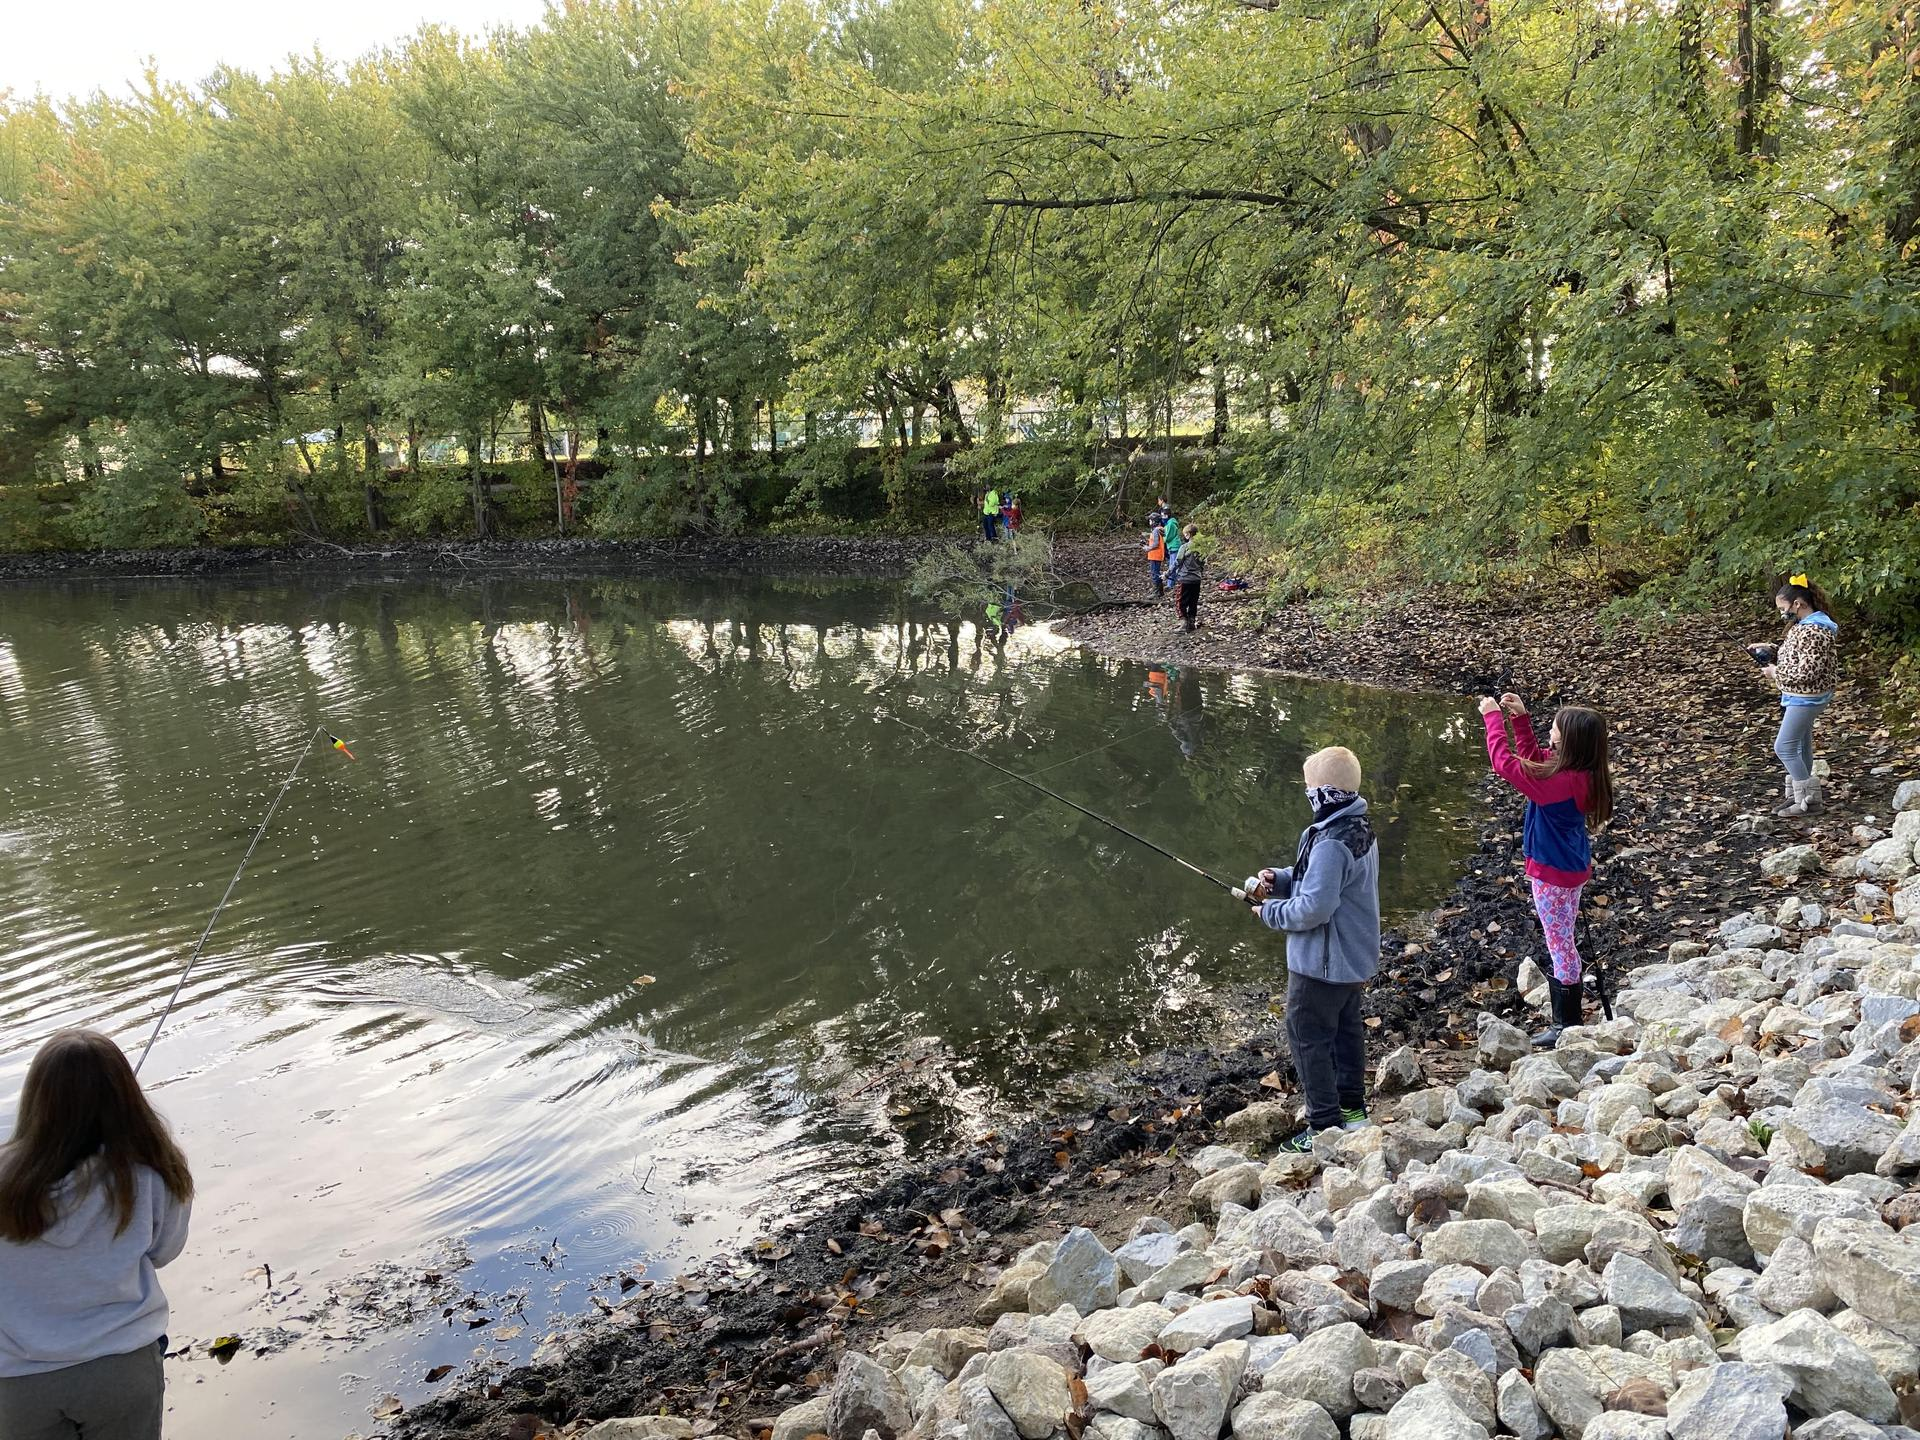 Picture of fifth graders fishing at the Cole Outdoor Education Center pond.